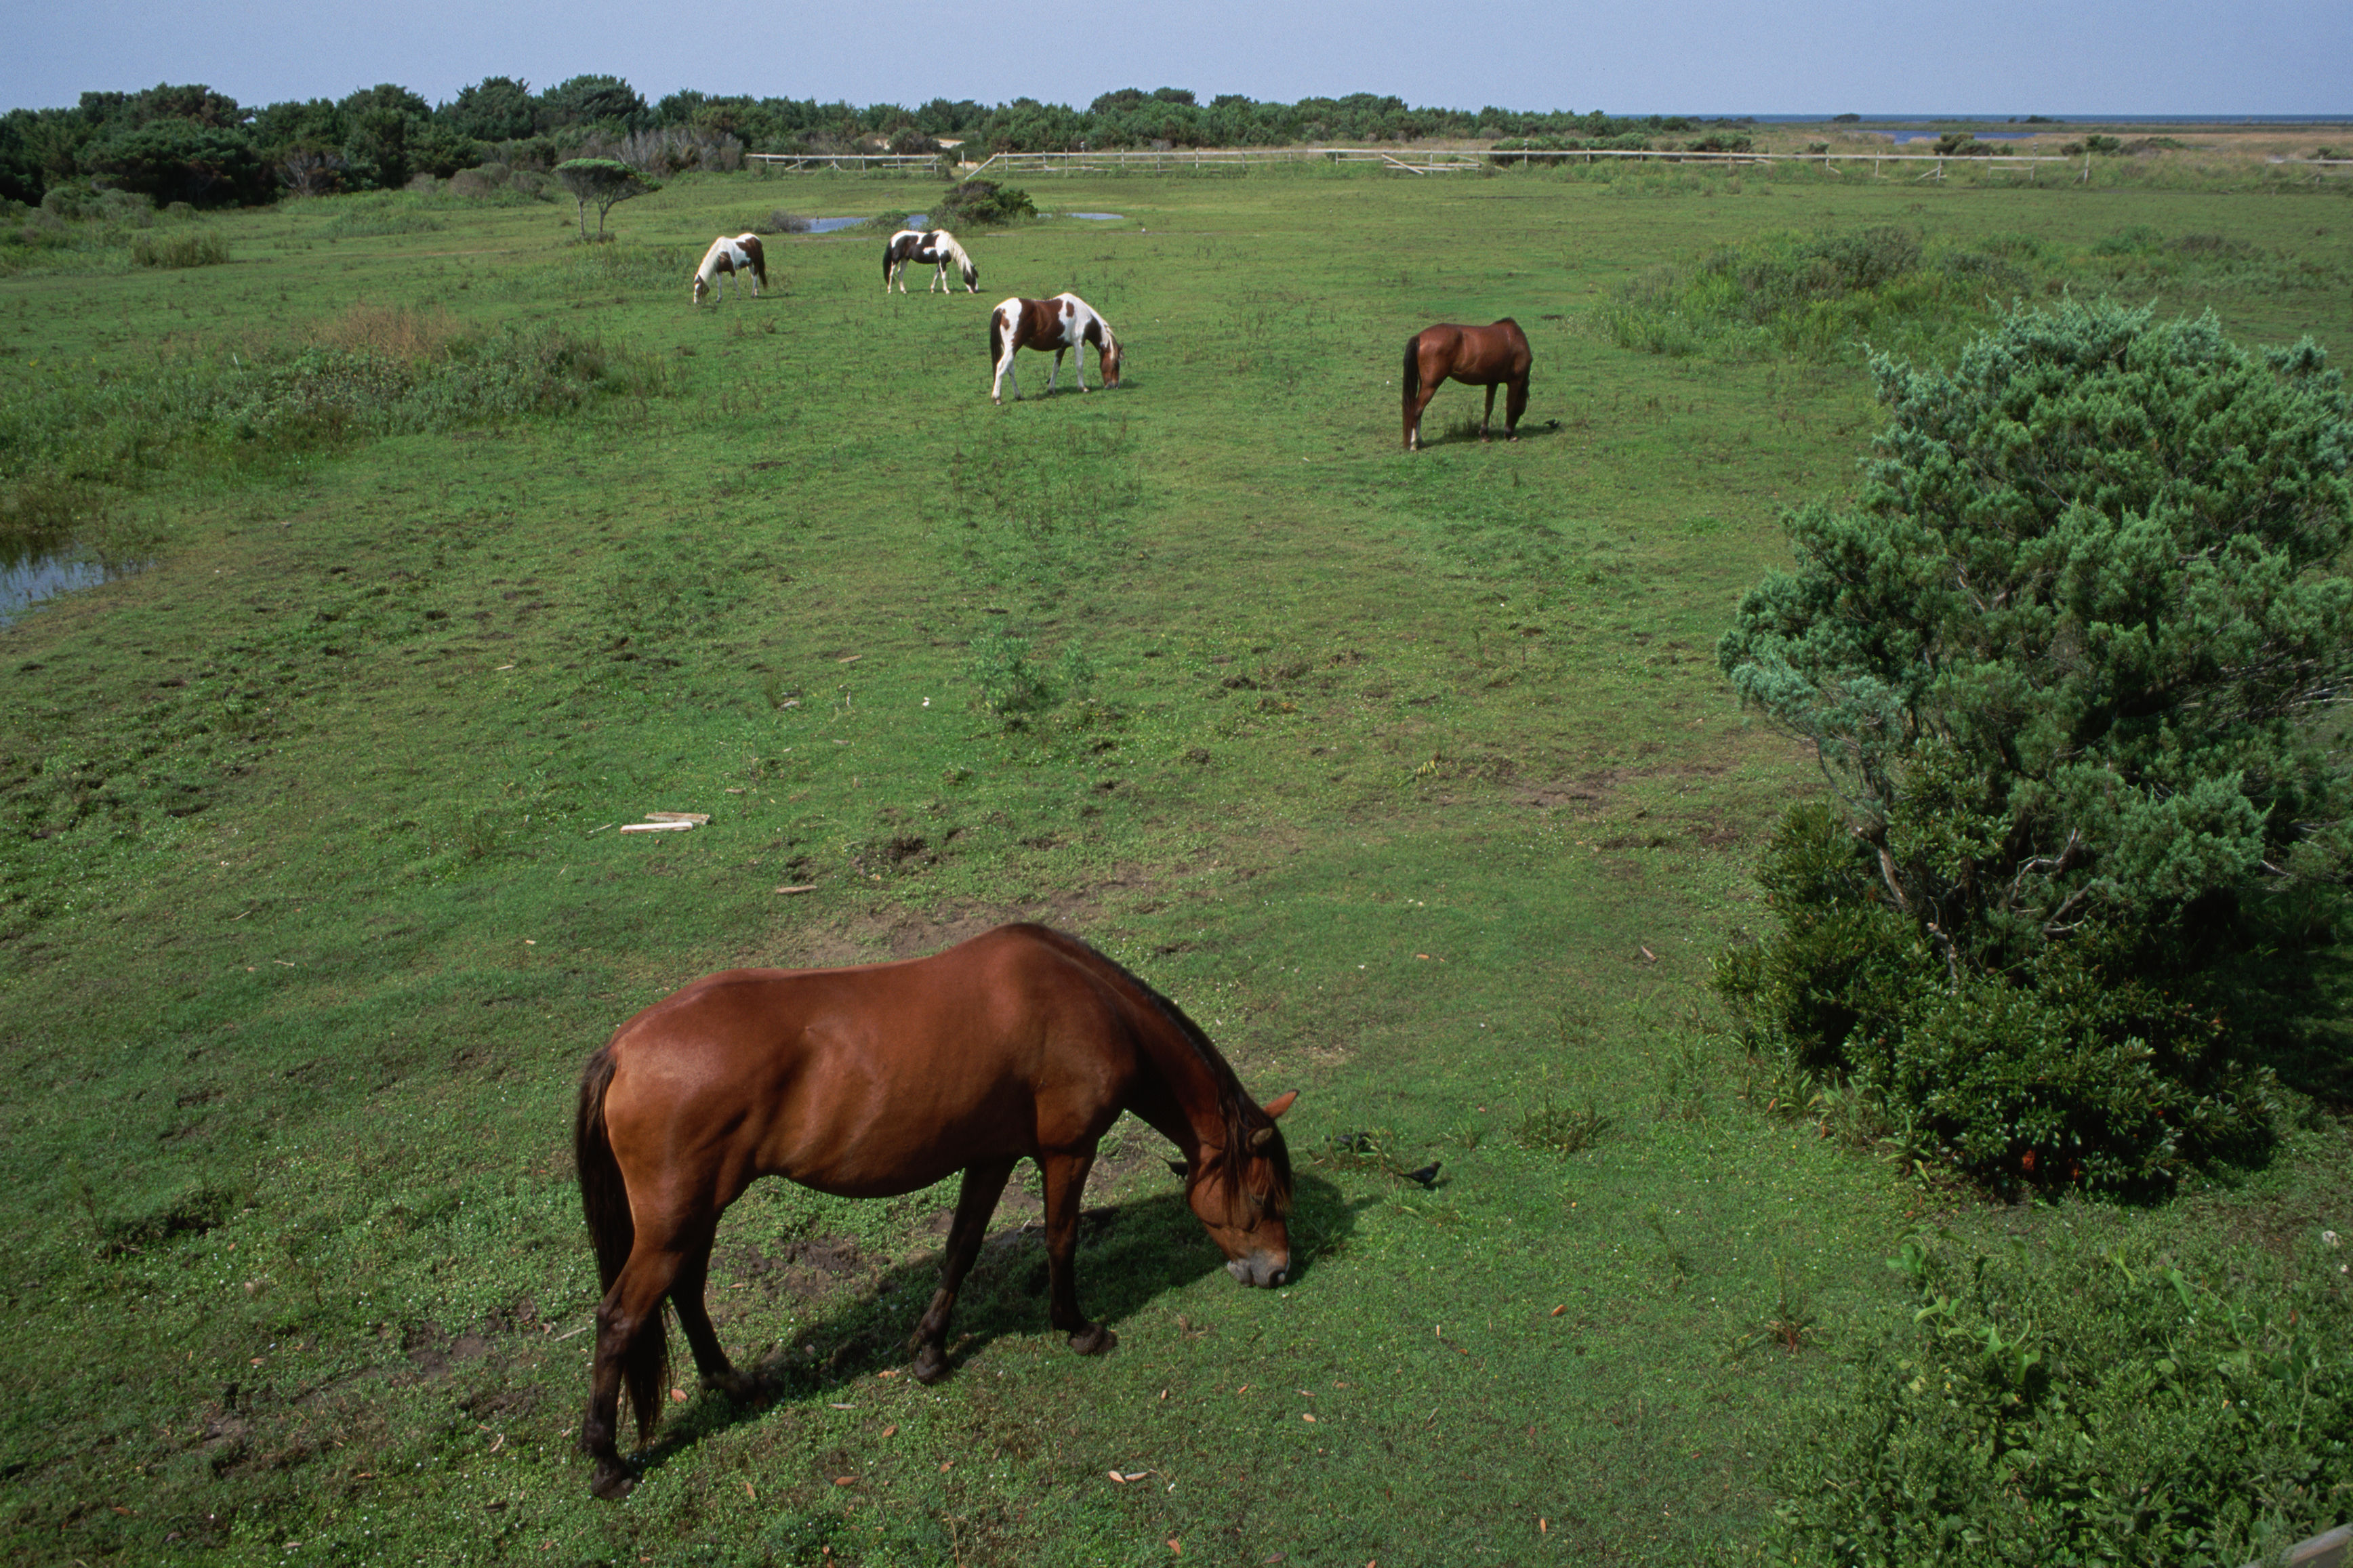 Meet the Outer Banks' Most Unique Wild Horse